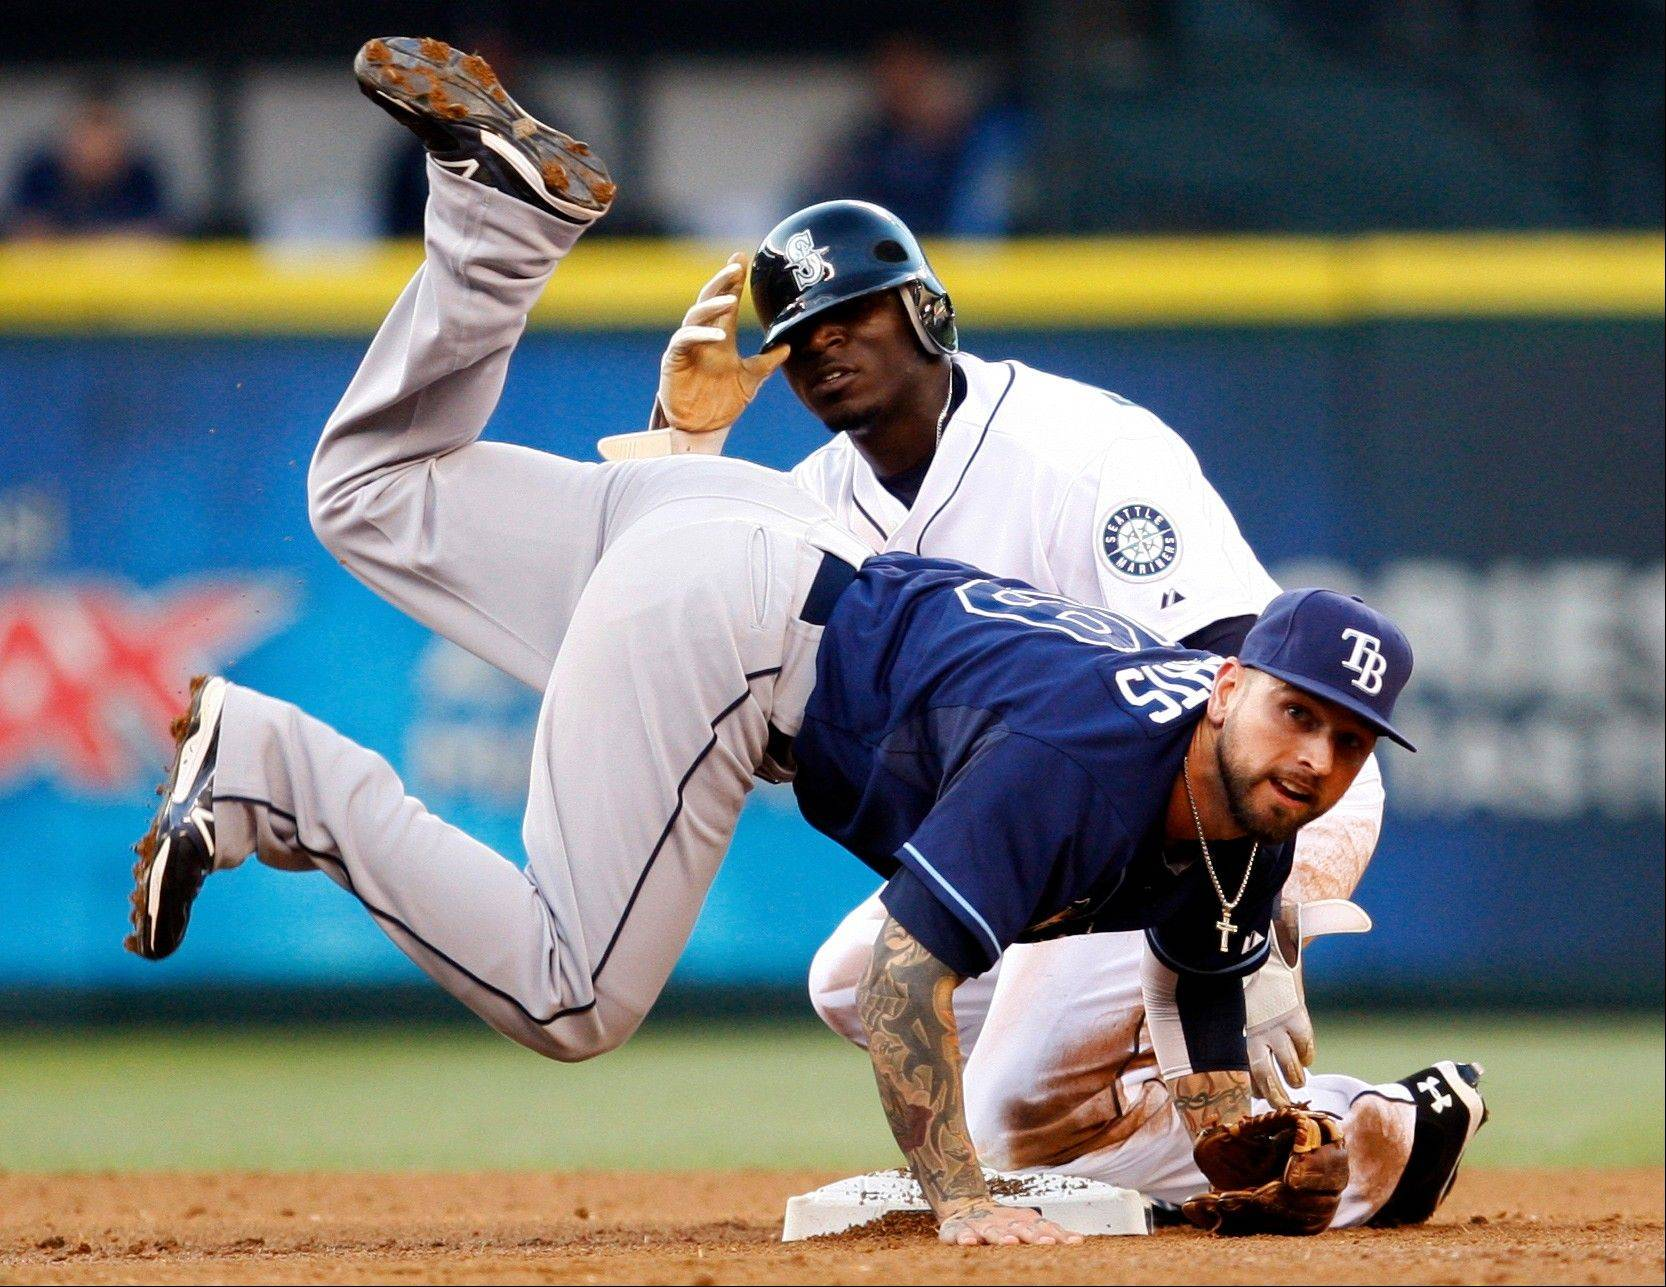 Tampa Bay second baseman Ryan Roberts jumps over the Mariners' Trayvon Robinson as he completes his throw to first base for a double play Tuesday night in Seattle.